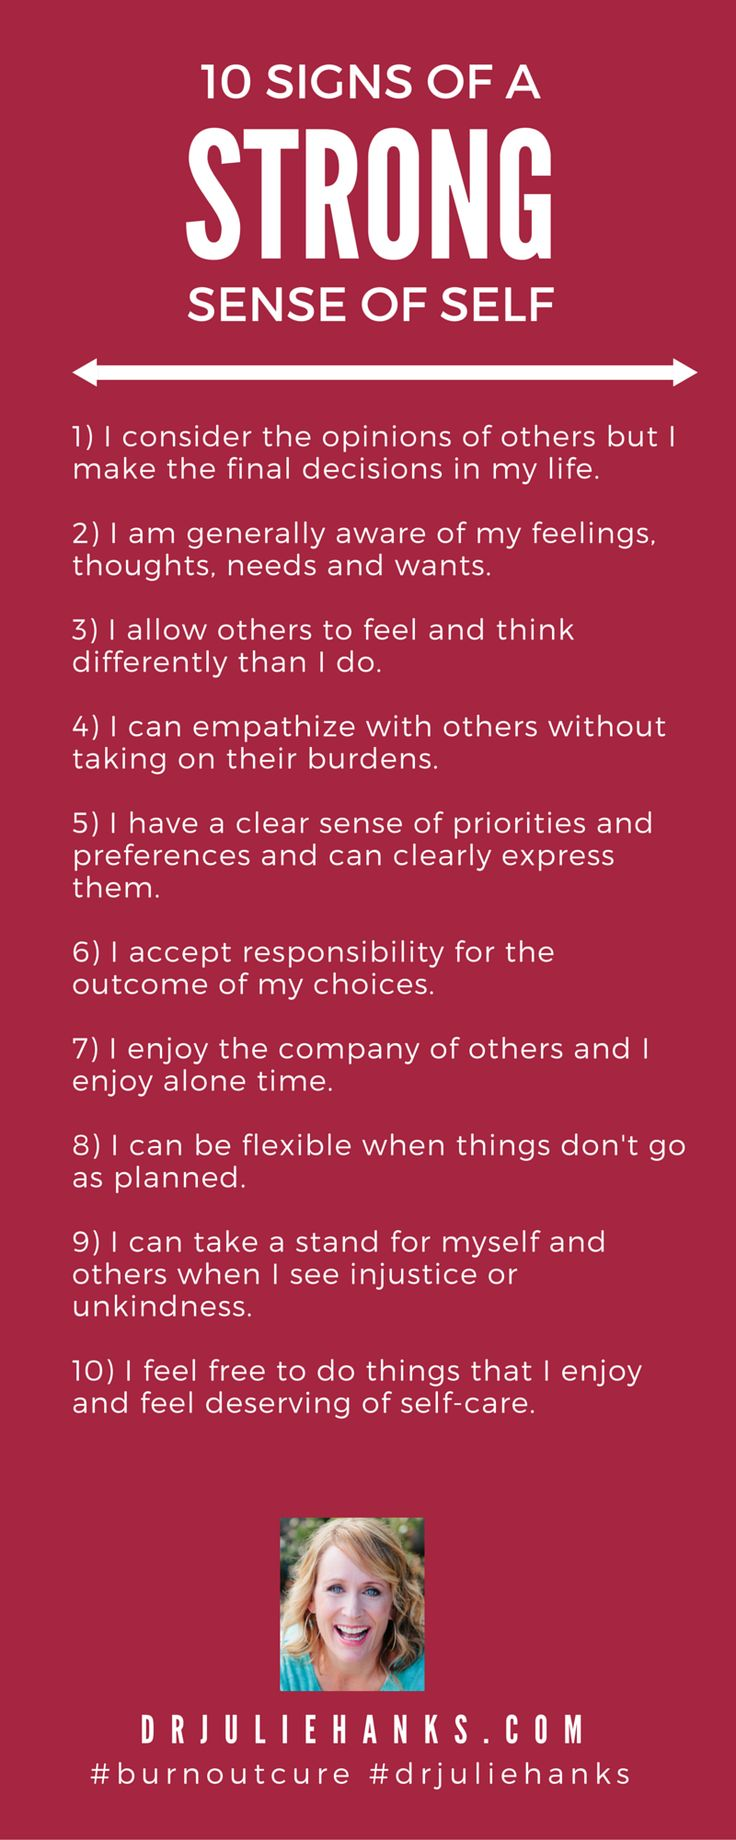 //10 Signs of a Healthy Self | Dr. Julie Hanks, LCSW | Emotional Health